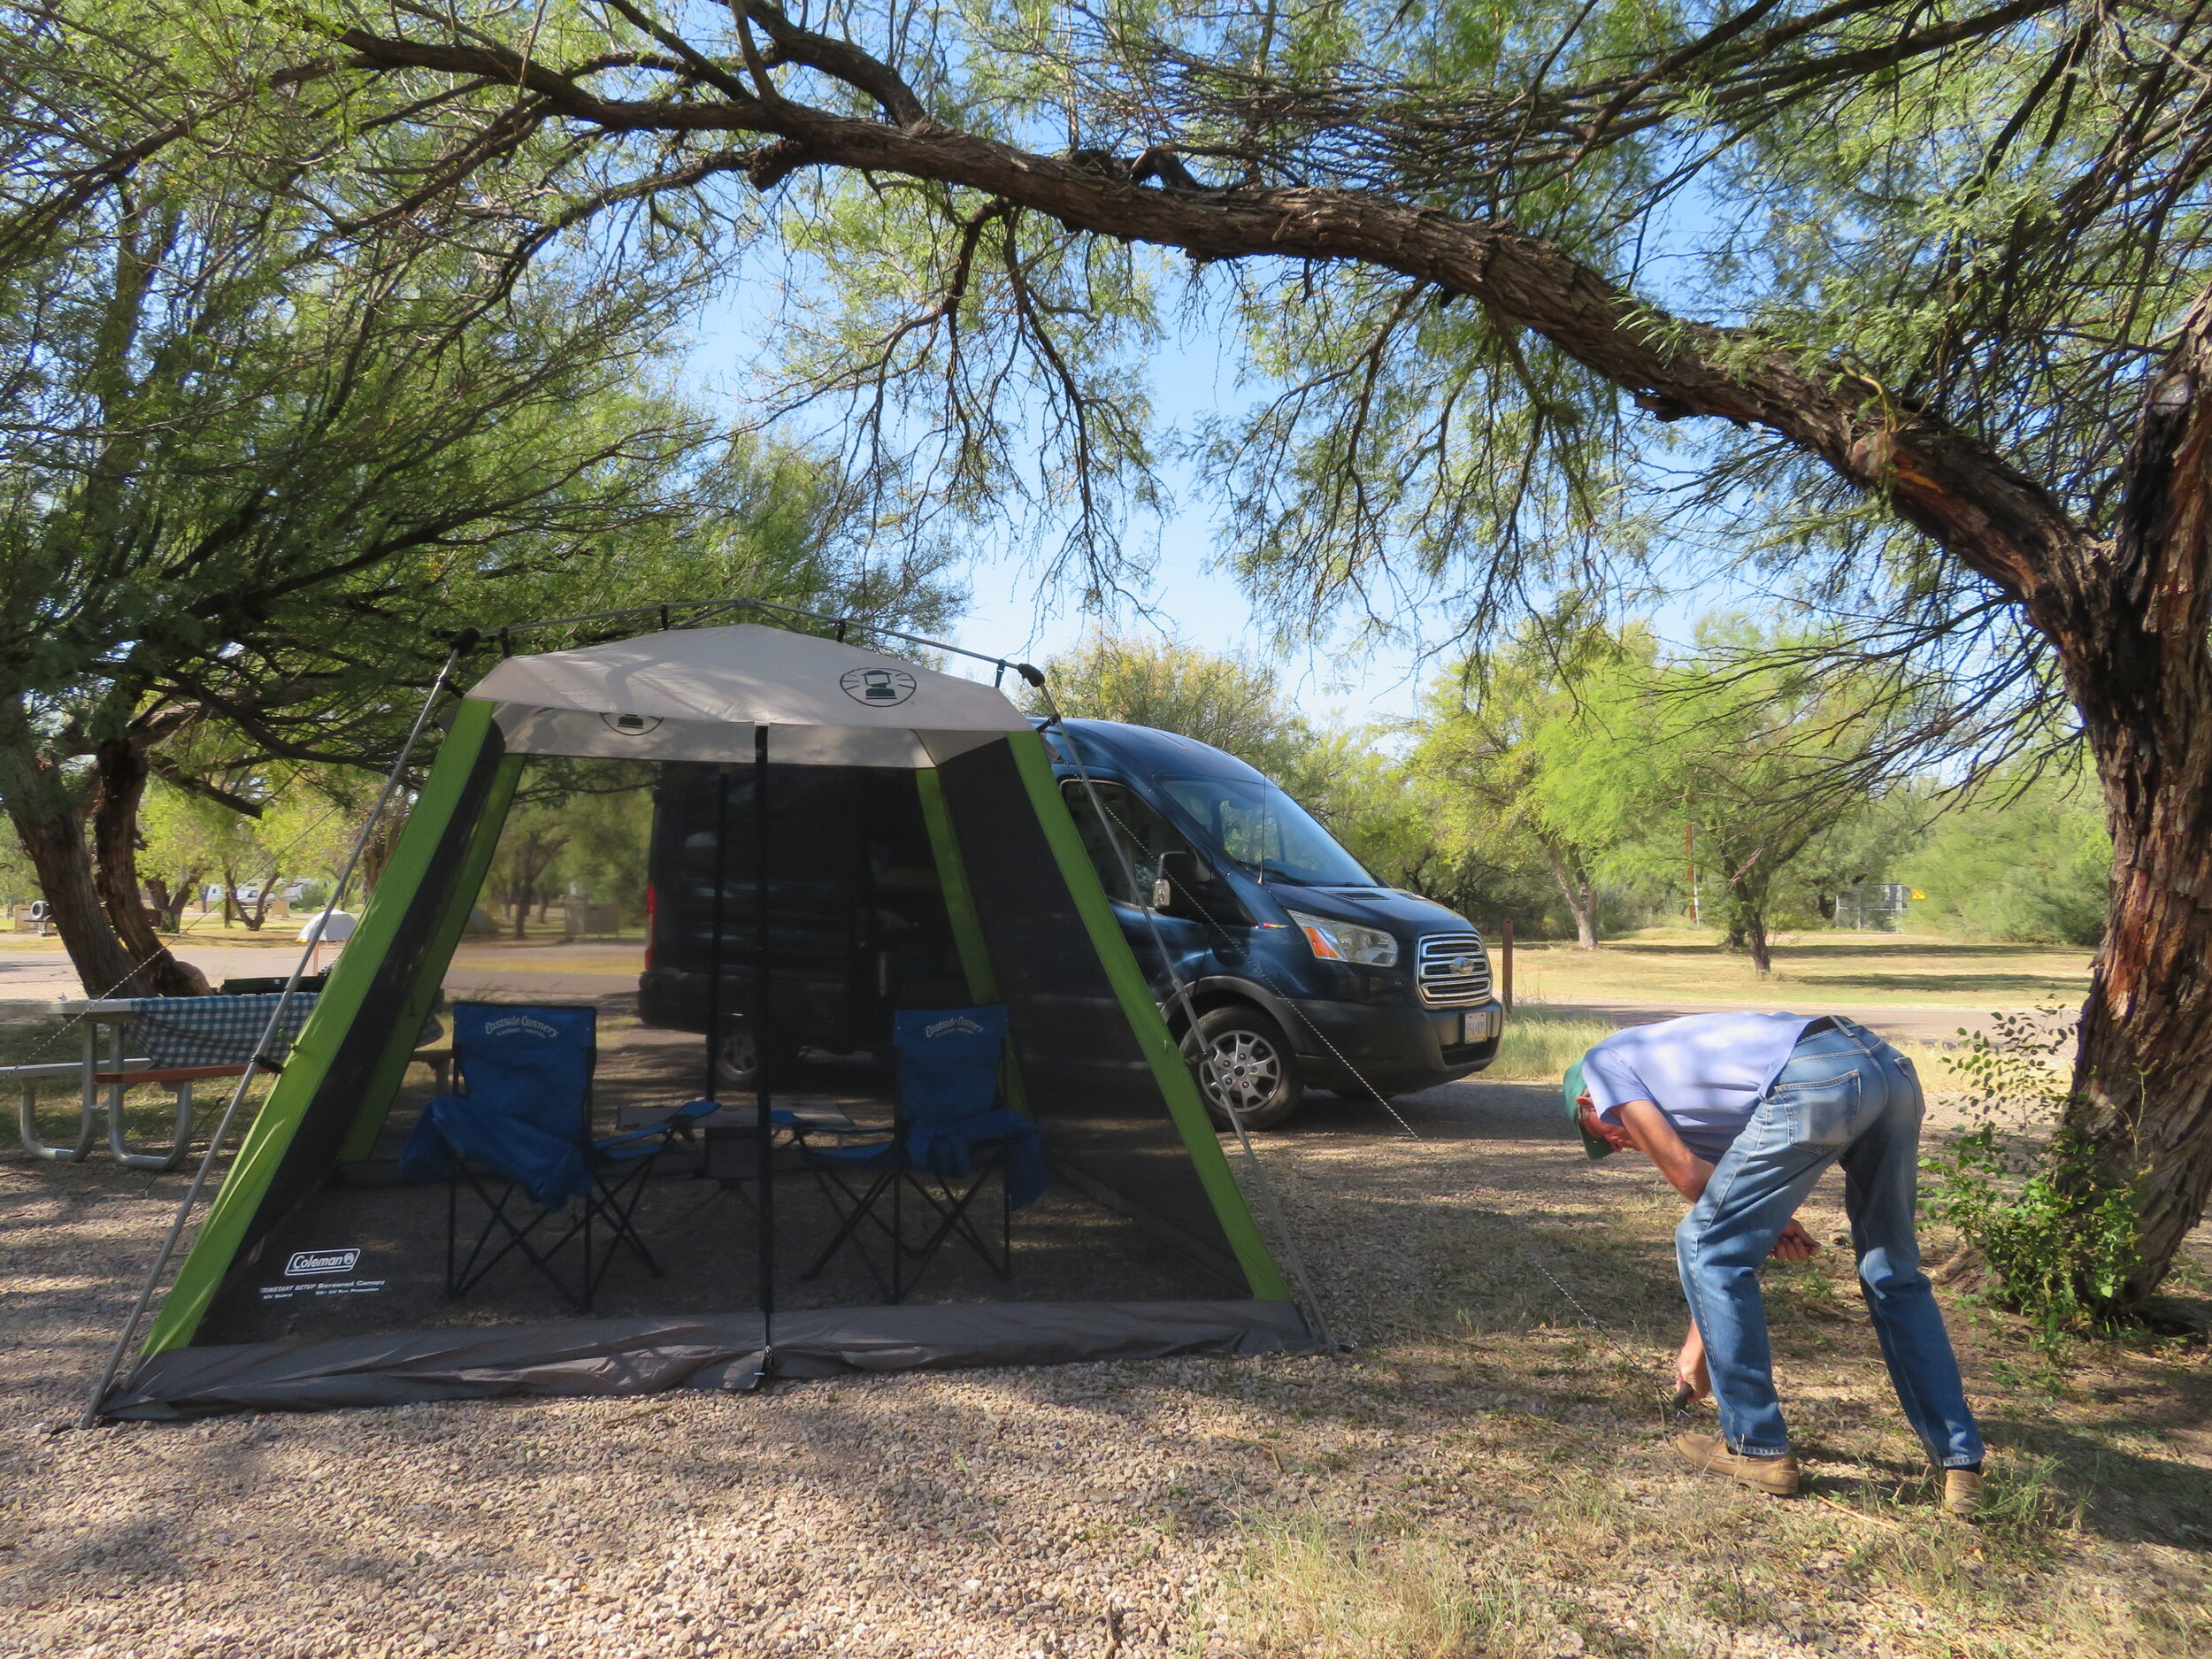 We had no problem finding a fine camp site in the Rio Grande Village campground. We sleep in Blue, but set up our screen house to get out of the sun. So is this camping or glamping?